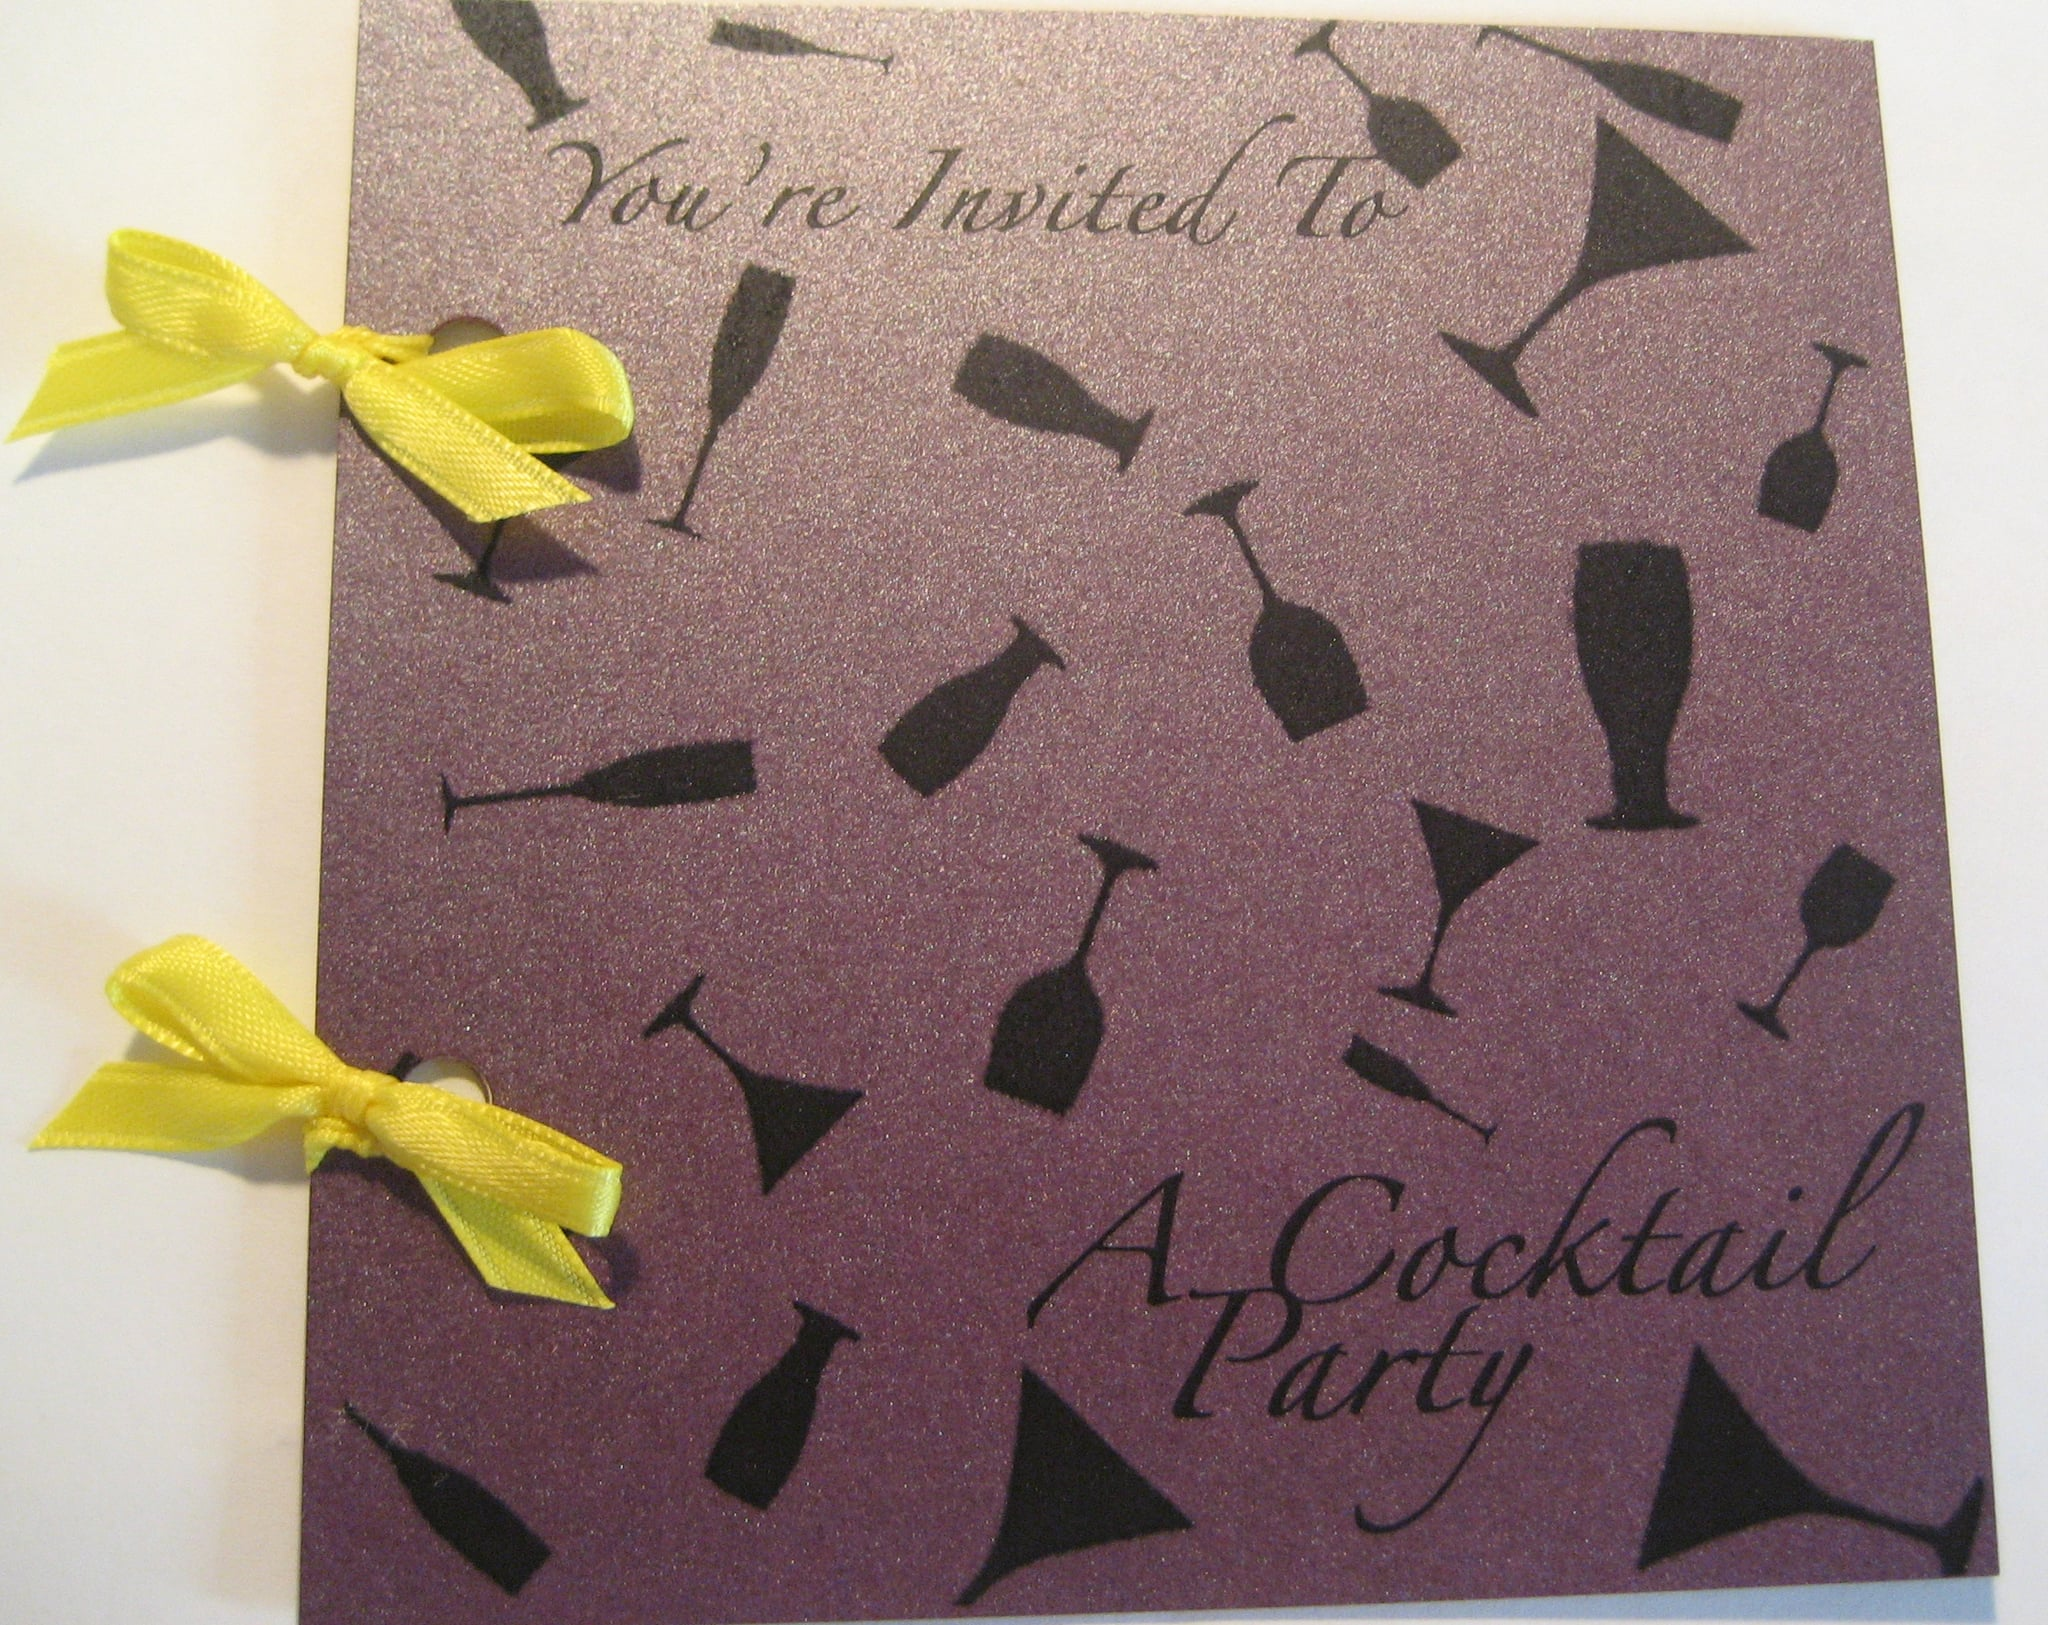 Come Party With Me: My Birthday Party - Invite